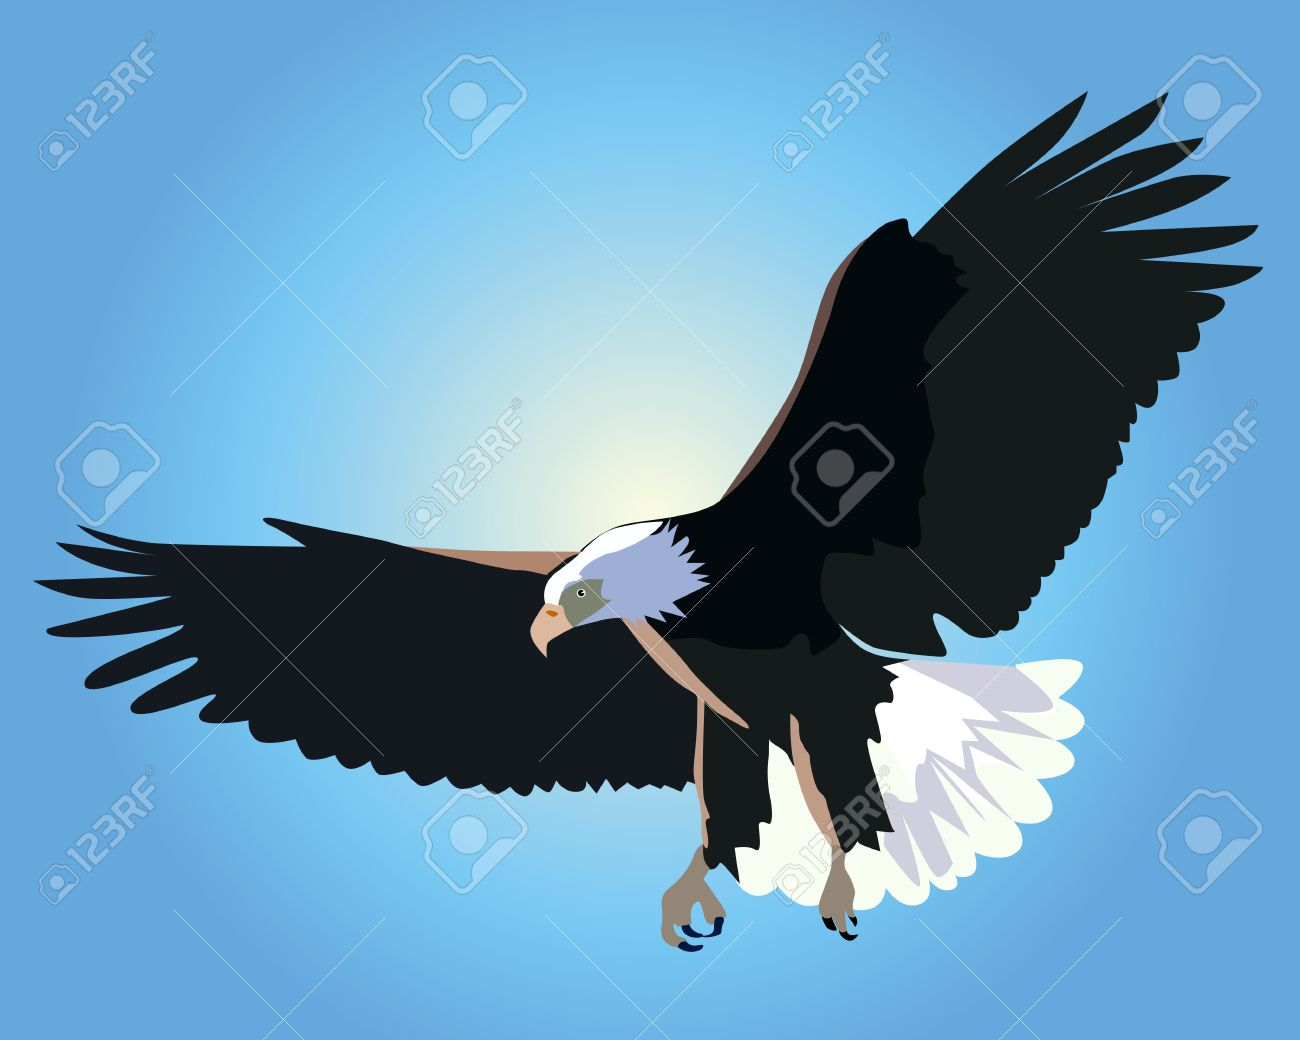 flying bald eagle on a background of blue sky royalty free